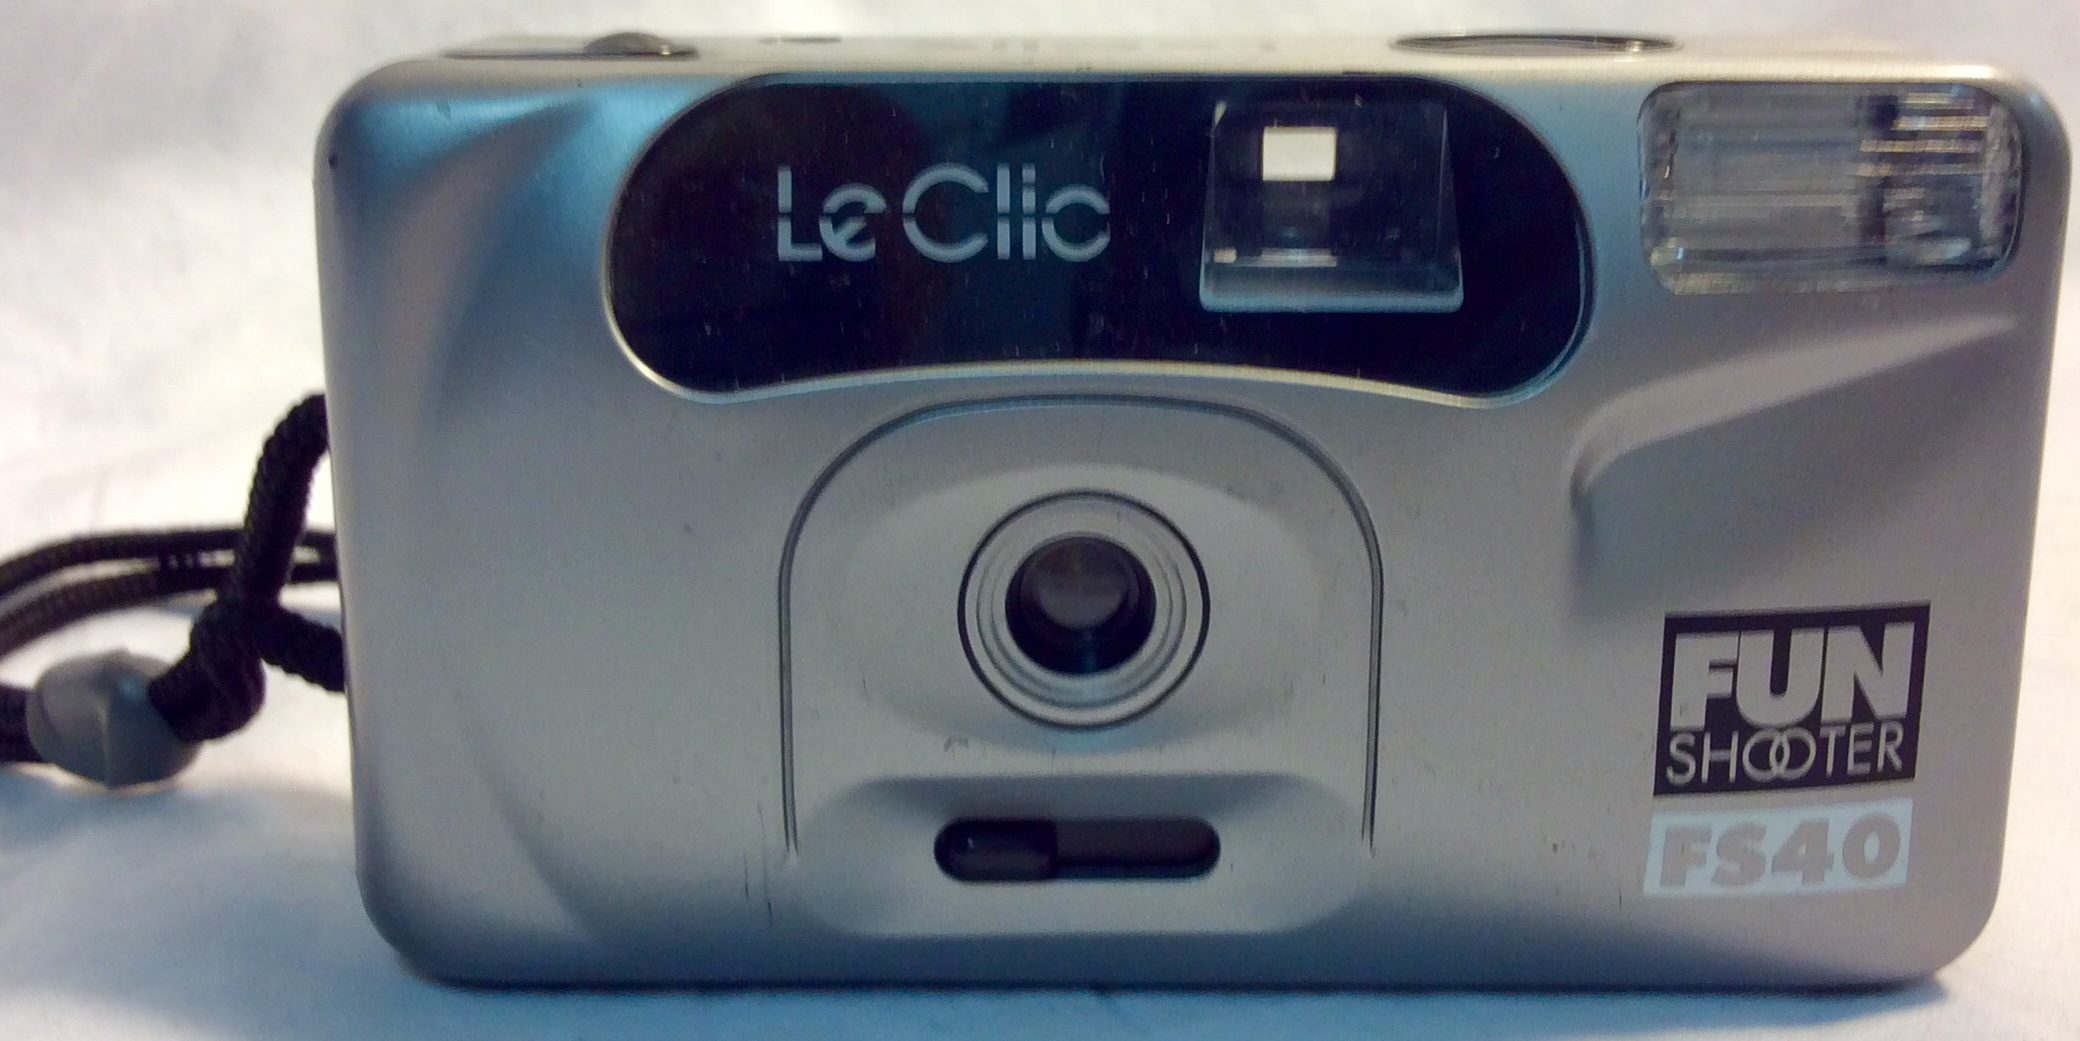 Le Clic Fun Shooter FS40 35mm